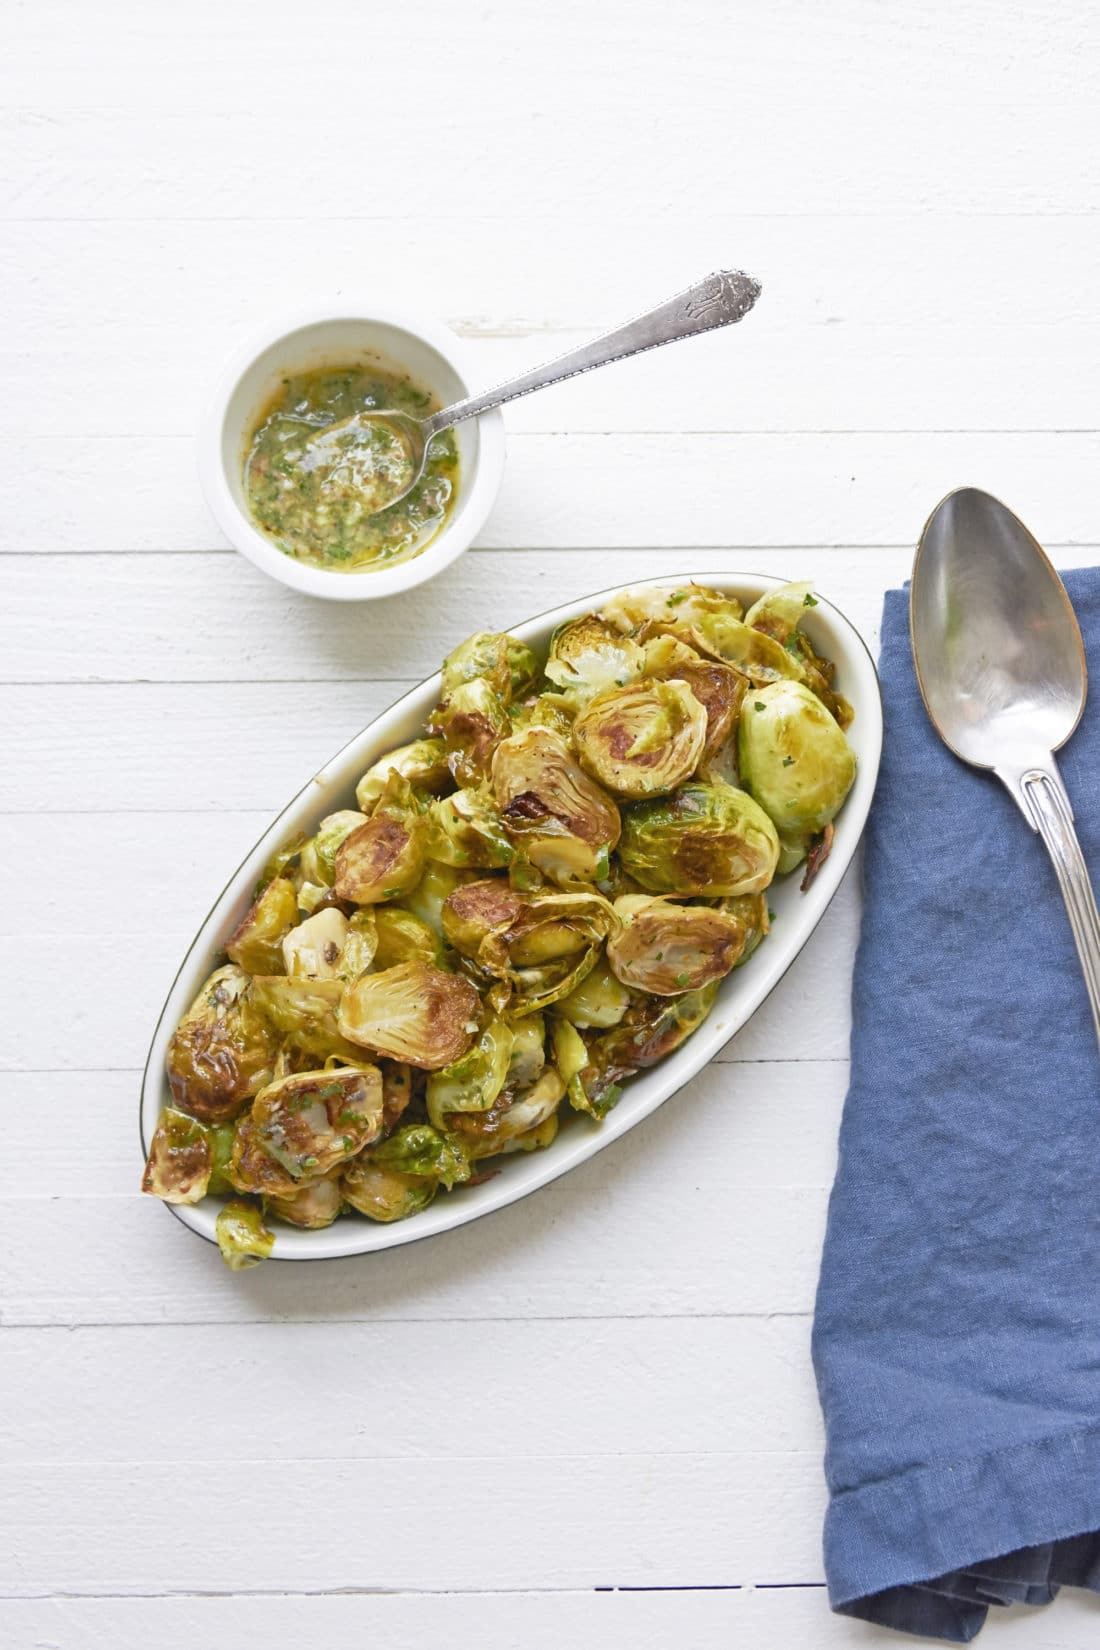 Warm Brussels Sprouts Salad with Anchovy Vinaigrette / Mia / Katie Workman / themom100.com